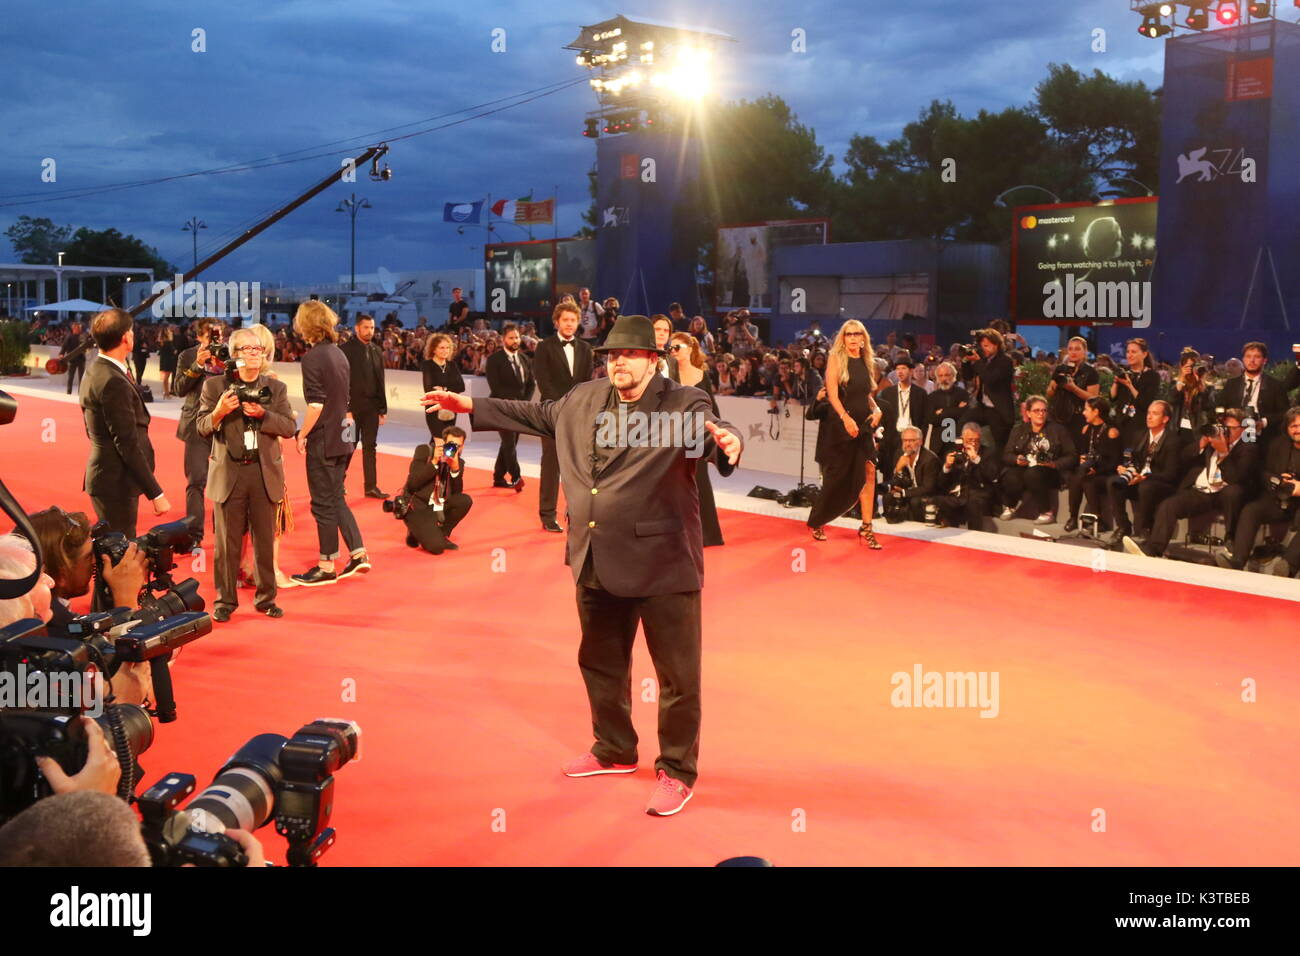 Venice, Italy. 3rd Sep, 2017. James Toback attends during the 'The Private Life Of A Modern Woman' premiere during the 74th Venice International Film Festival at Lido of Venice on 3th September, 2017. Credit: Andrea Spinelli/Alamy Live News - Stock Image